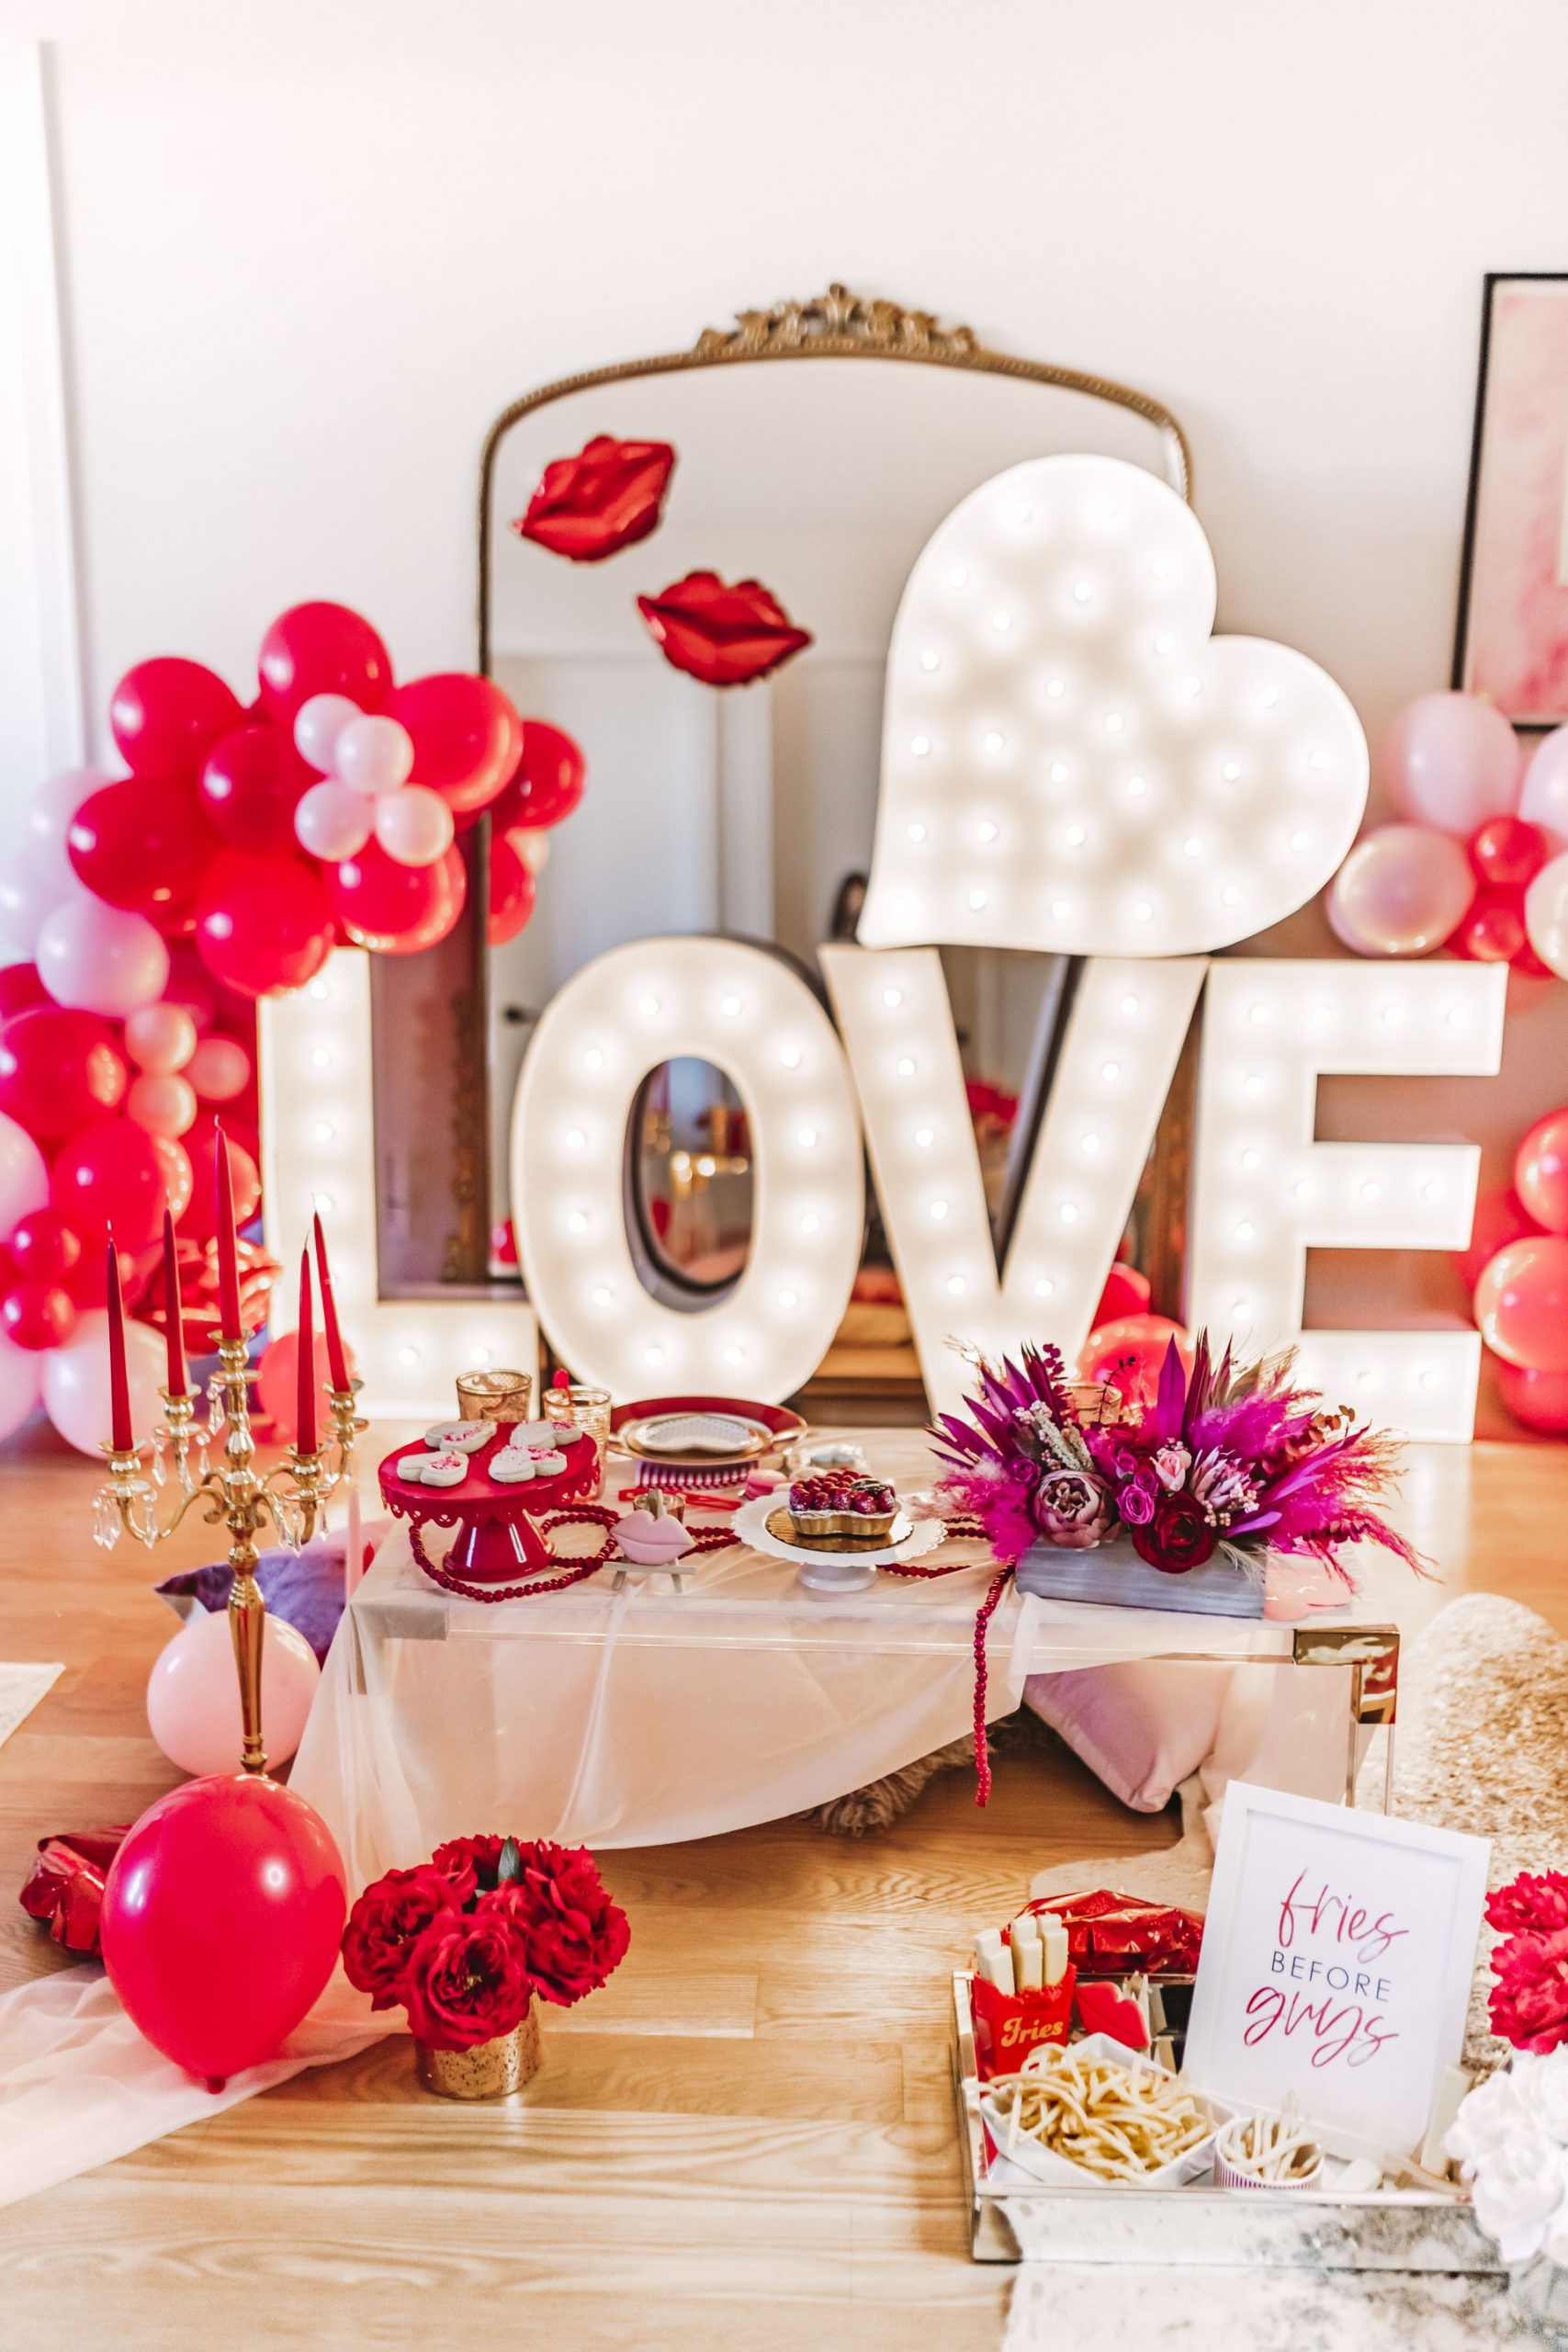 glam Valentine's and Galentine's party, Glam Party Decor Ideas, Galentine's party decor, Valentine's day party decor, girls night party decor ideas, Vday party decorations, pink and red party theme, girly partytheme decor, love party theme decor,valentines day party ideas,valentines day party ideas for adults, light up marquee letters for parties, pink and red balloon ideas, pink and red floral ideas, intimate party table setting ideas, Red Soles and Red Wine